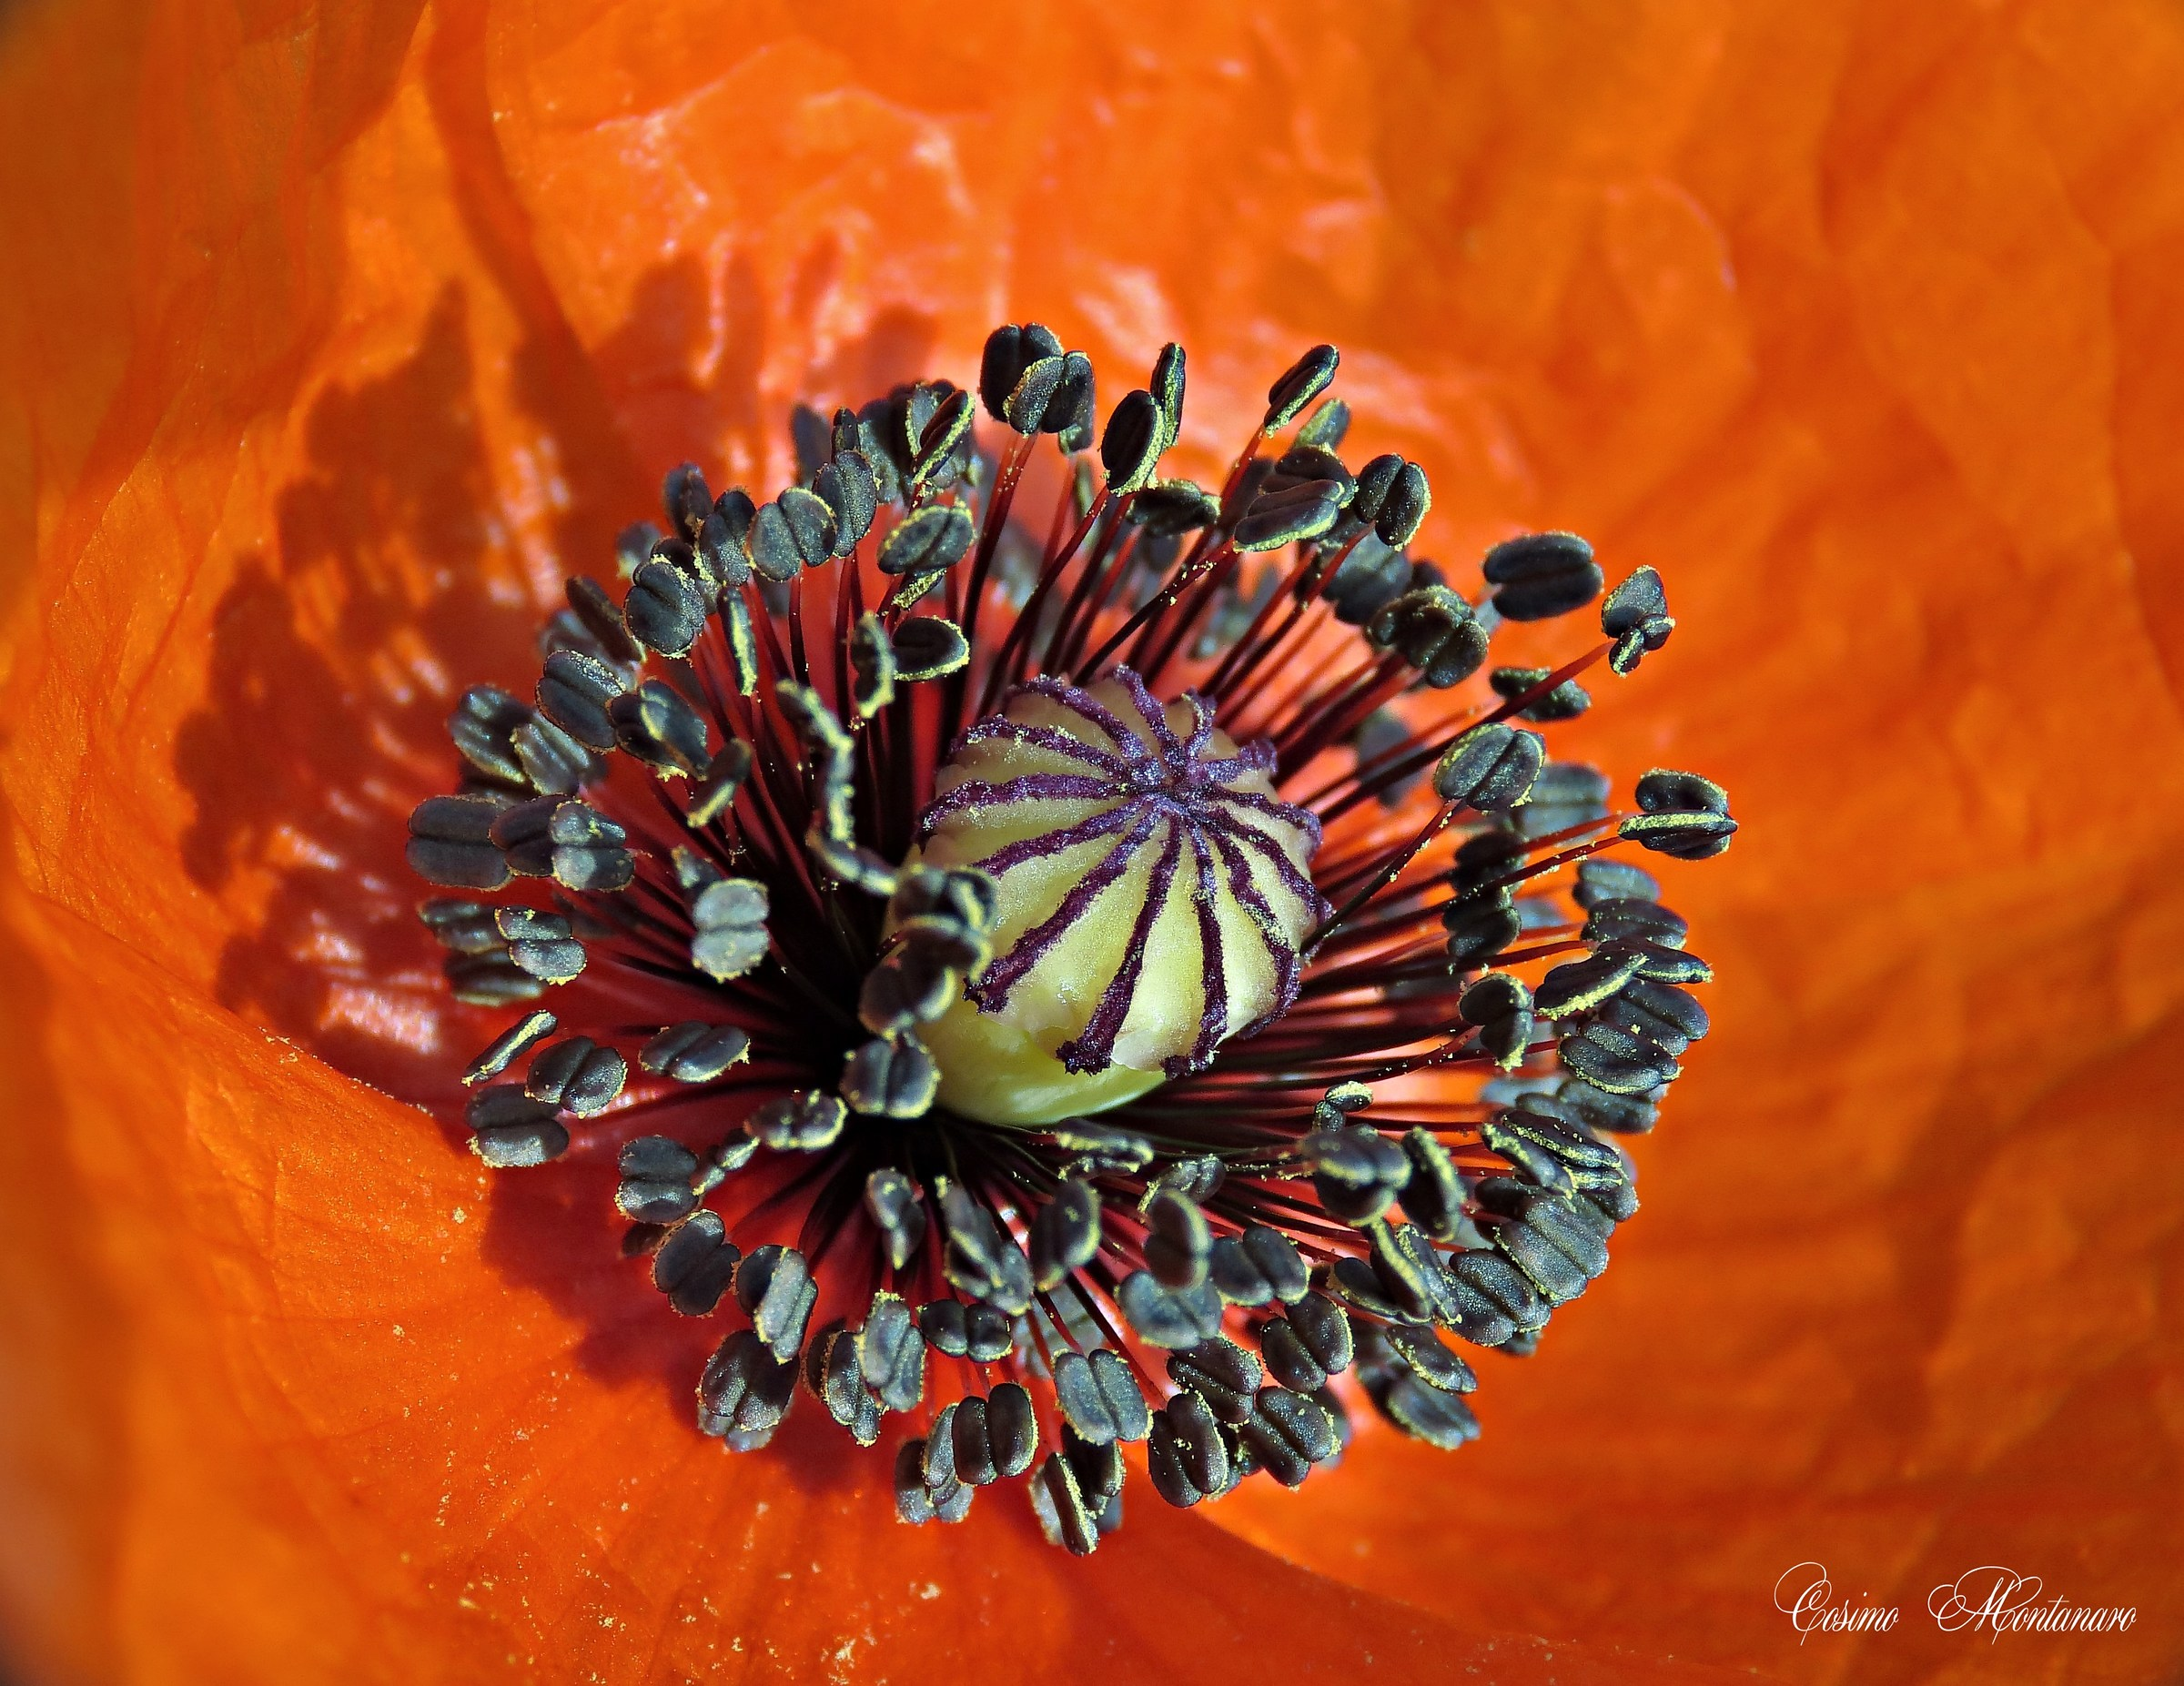 In the heart of the poppy...